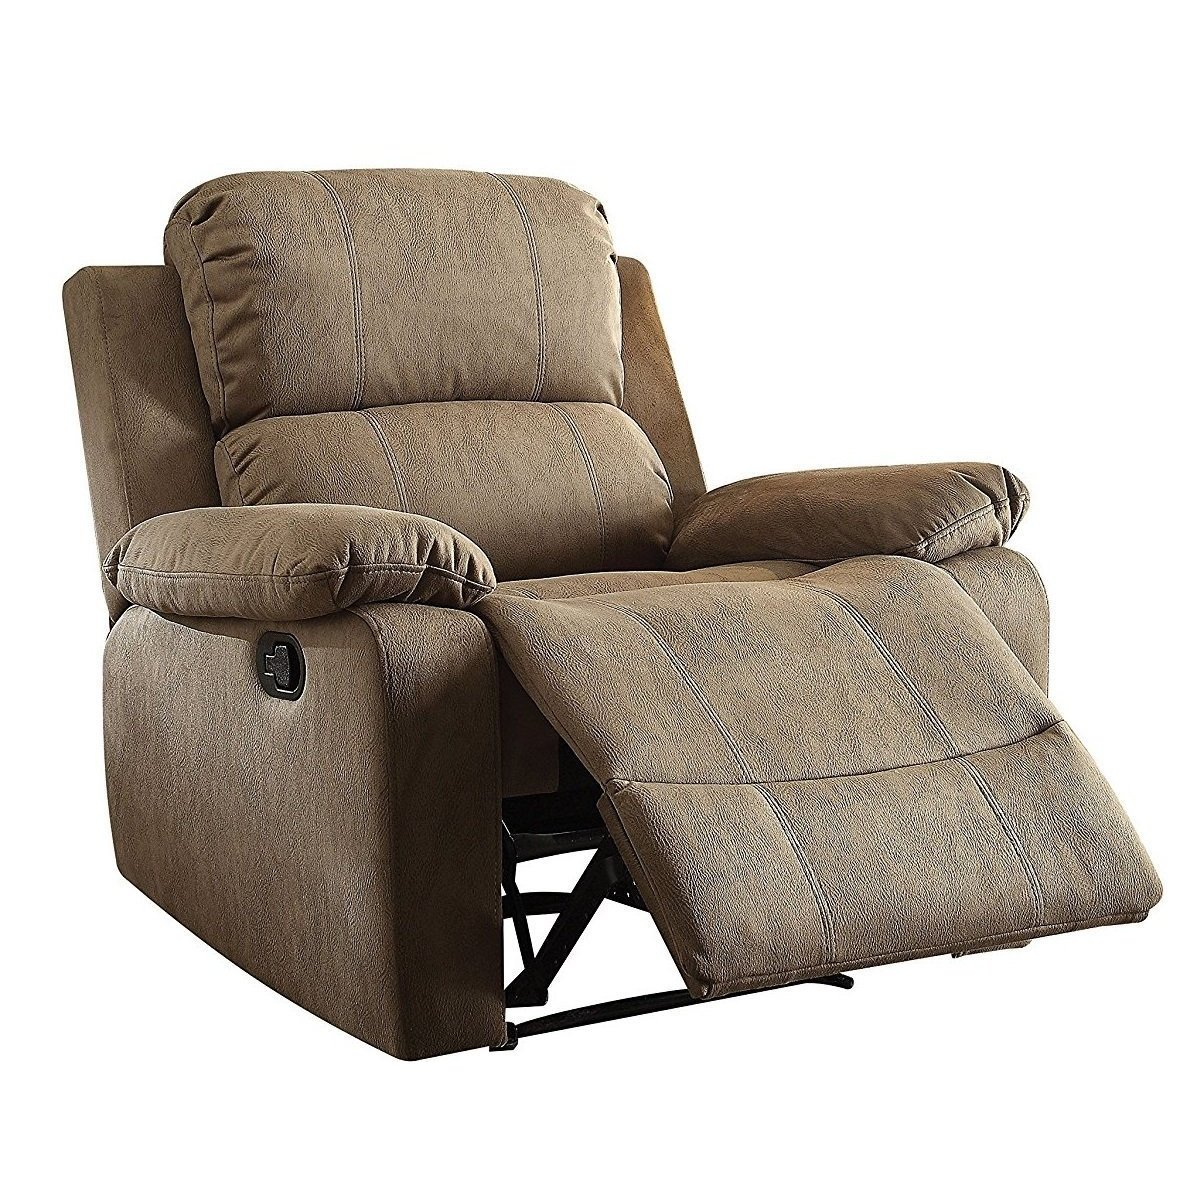 Recliner Pillow Q Max Tan Memory Foam Pillow Top Recliner